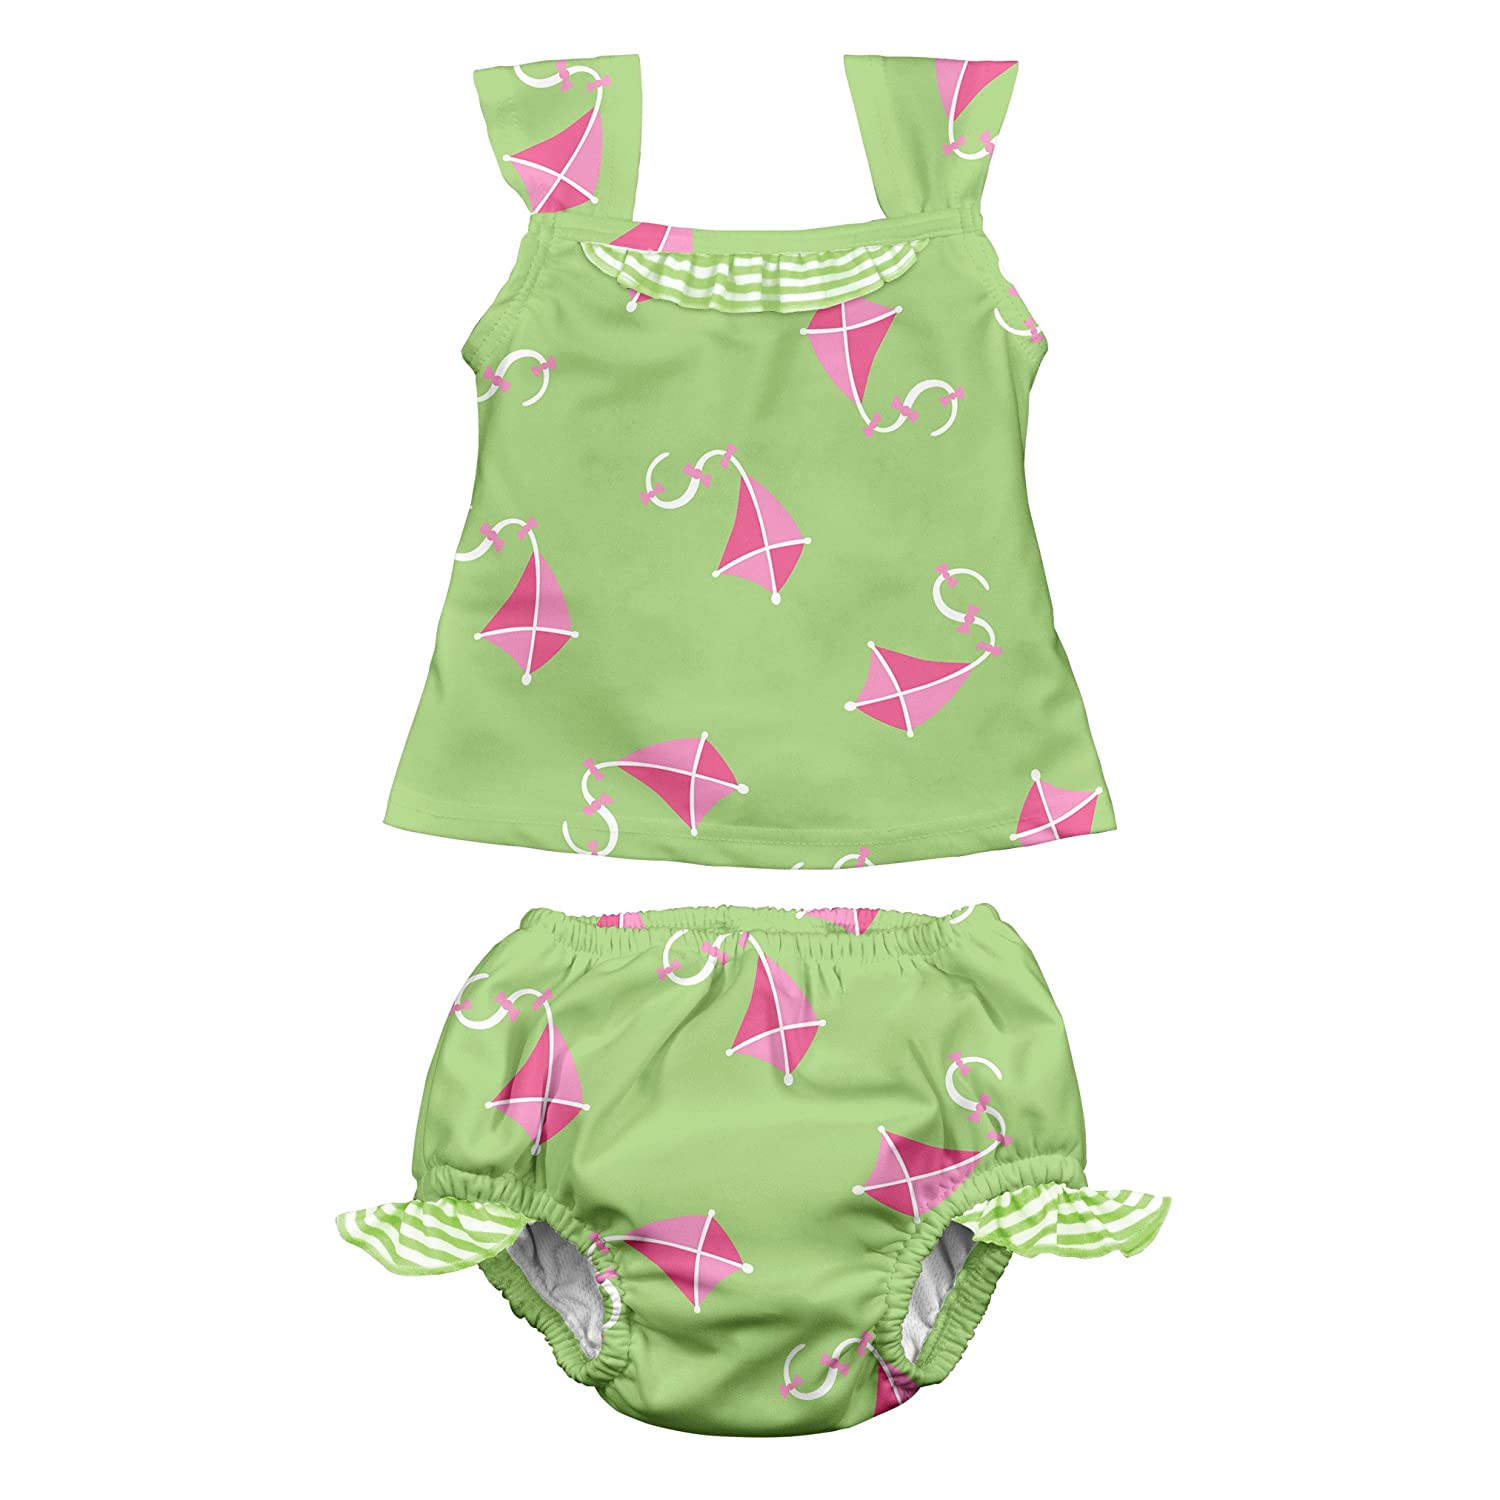 i play. Baby & Toddler Girls' Tankini Set with Built-In Absorbent Swim Diaper i play Children's Apparel